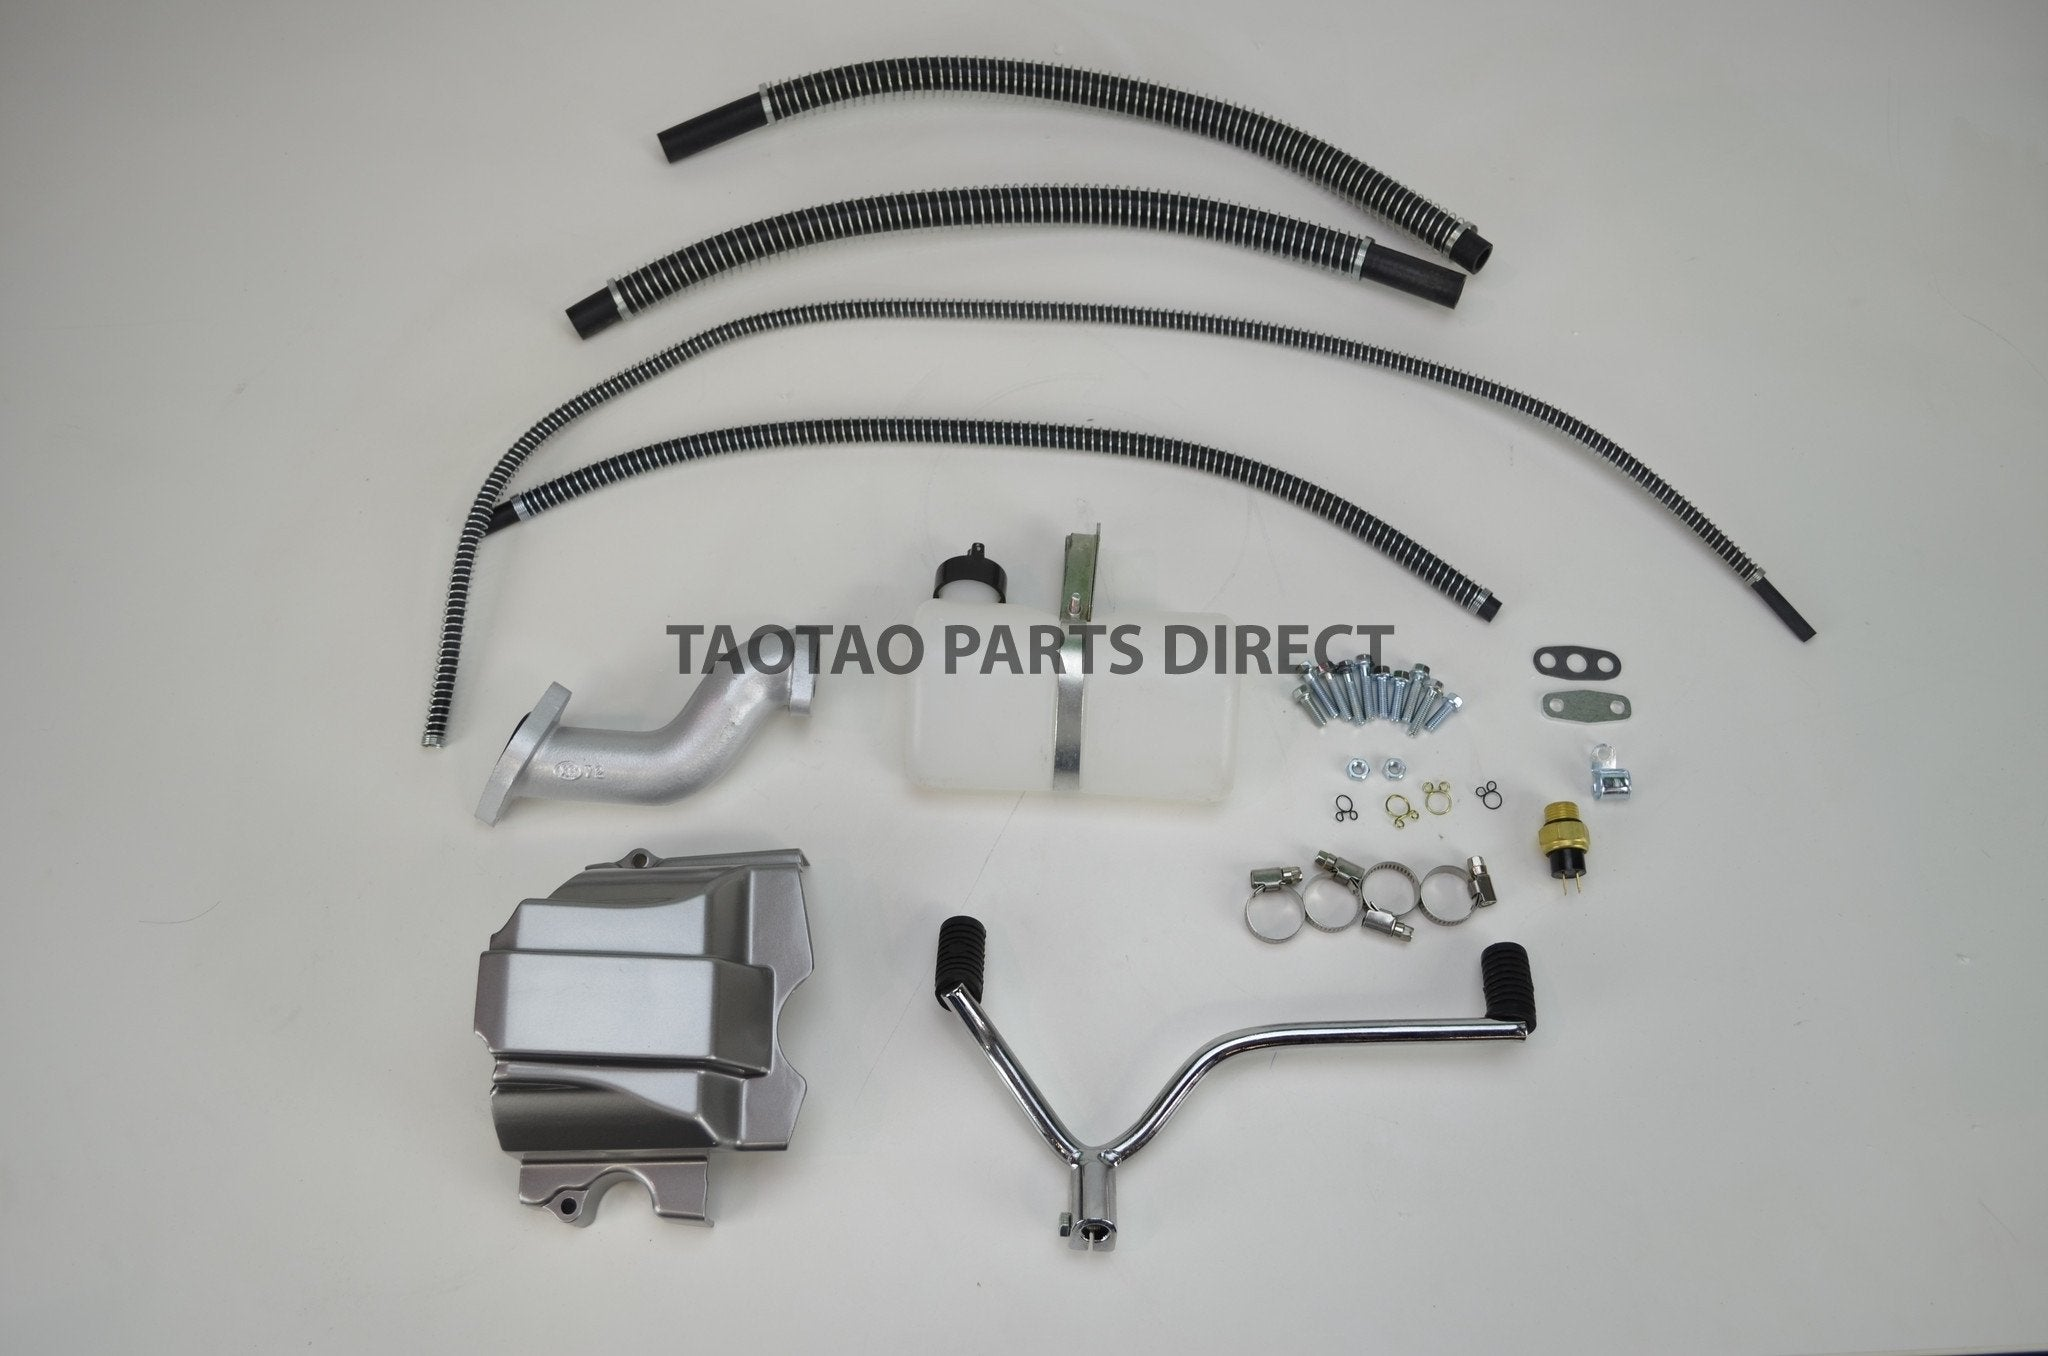 ATV Parts - 200cc Water Cooled Engine